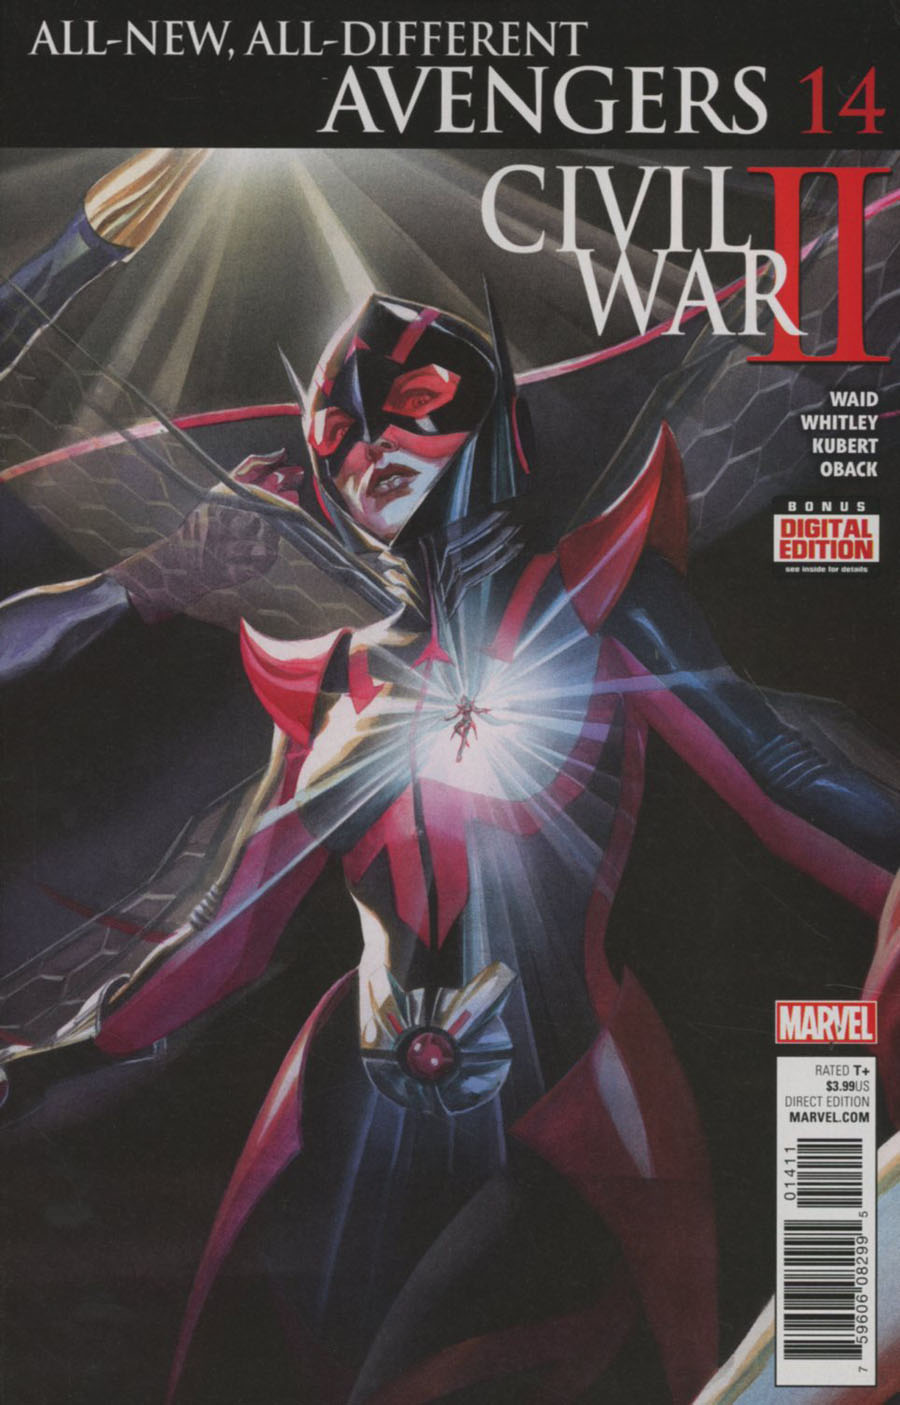 All-New All-Different Avengers #14 Cover A Regular Alex Ross Cover (Civil War II Tie-In)